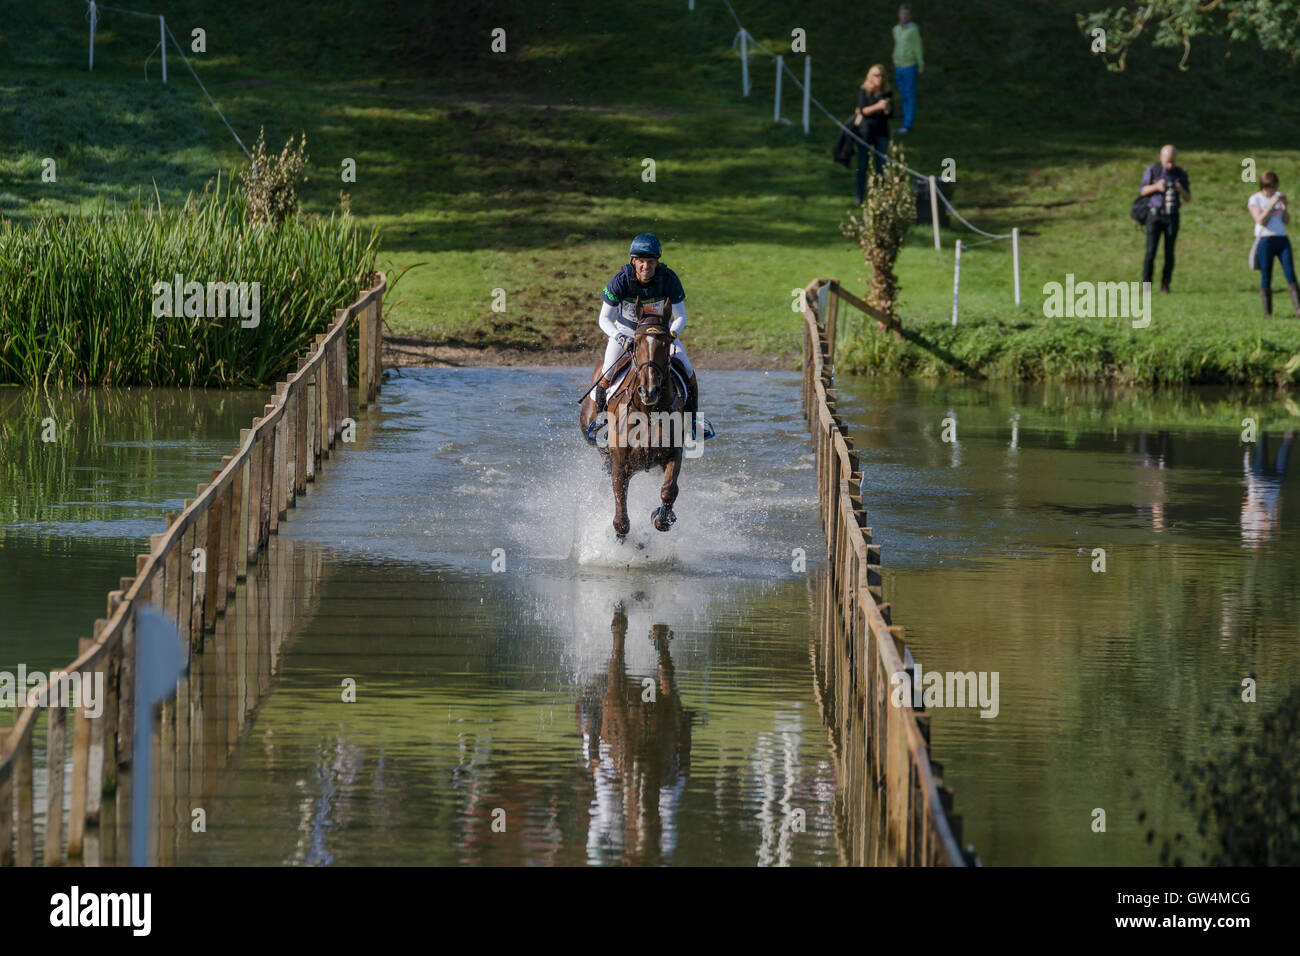 Riders compete in cross country horse trials at Blenheim Palace International Horse trials. Credit:  Scott Carruthers/Alamy - Stock Image